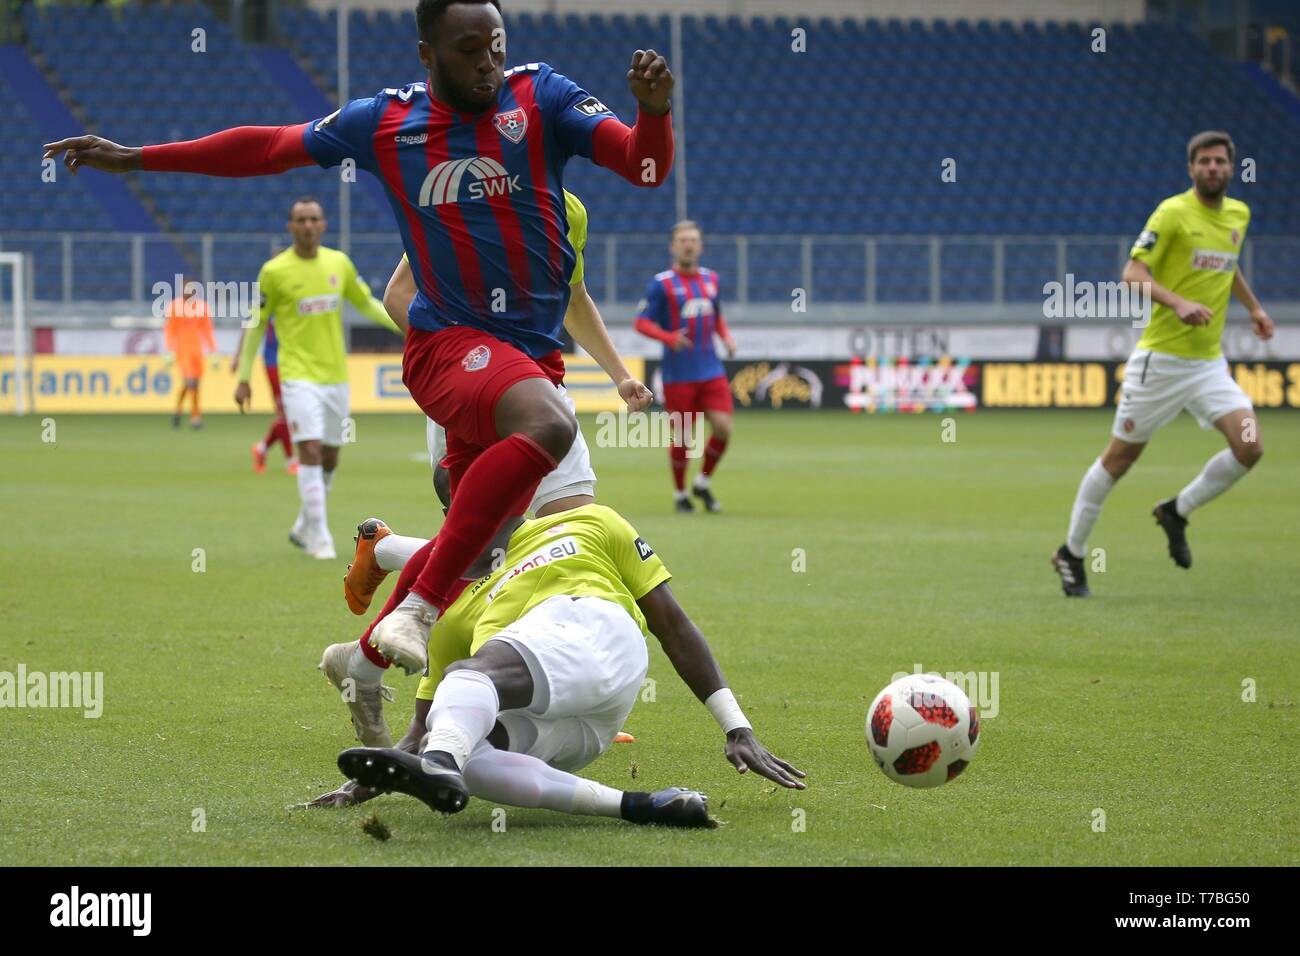 Duisburg, Deutschland. 05th May, 2019. firo: 05.05.2019 Football, 3. Bundesliga, season 2018/2019 KFC Uerdingen 05 - FC Energie Cottbus Jossà © -Junior Matuwila (# 5, FC Energie Cottbus) gets Osayamen Osawe (# 35, KFC Uerdingen 05) off his feet. | usage worldwide Credit: dpa/Alamy Live News - Stock Image